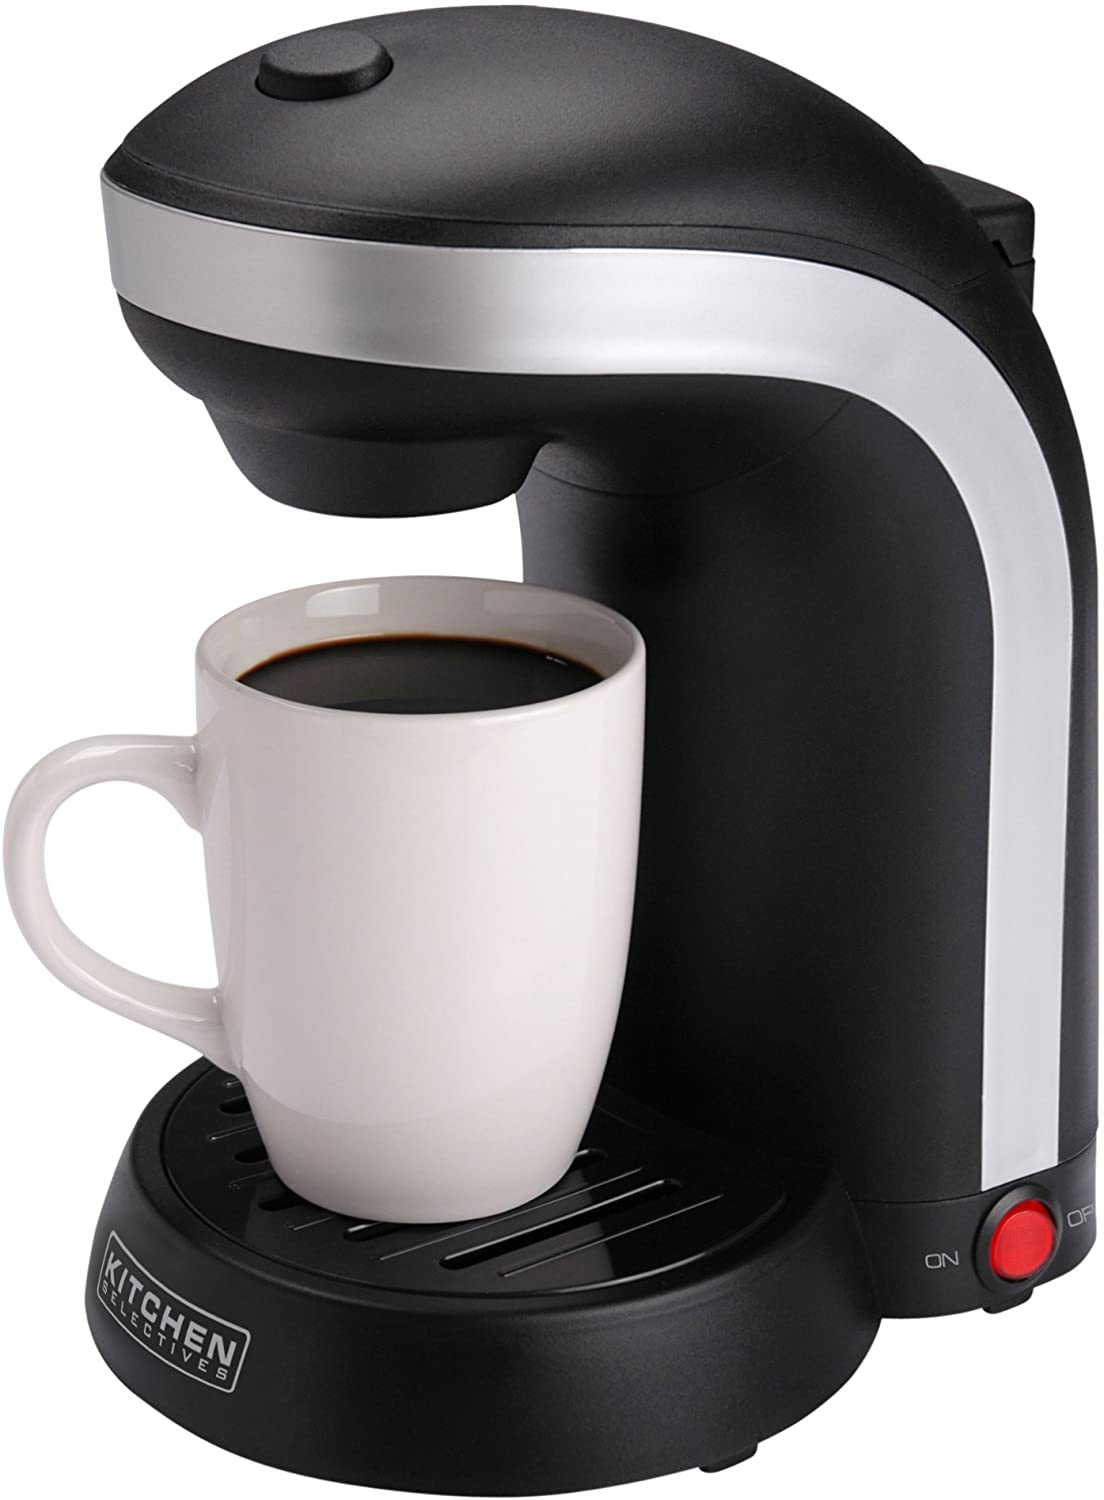 The 5 best coffee makers for one person -Personal coffee maker (Reviews of 2020) 1